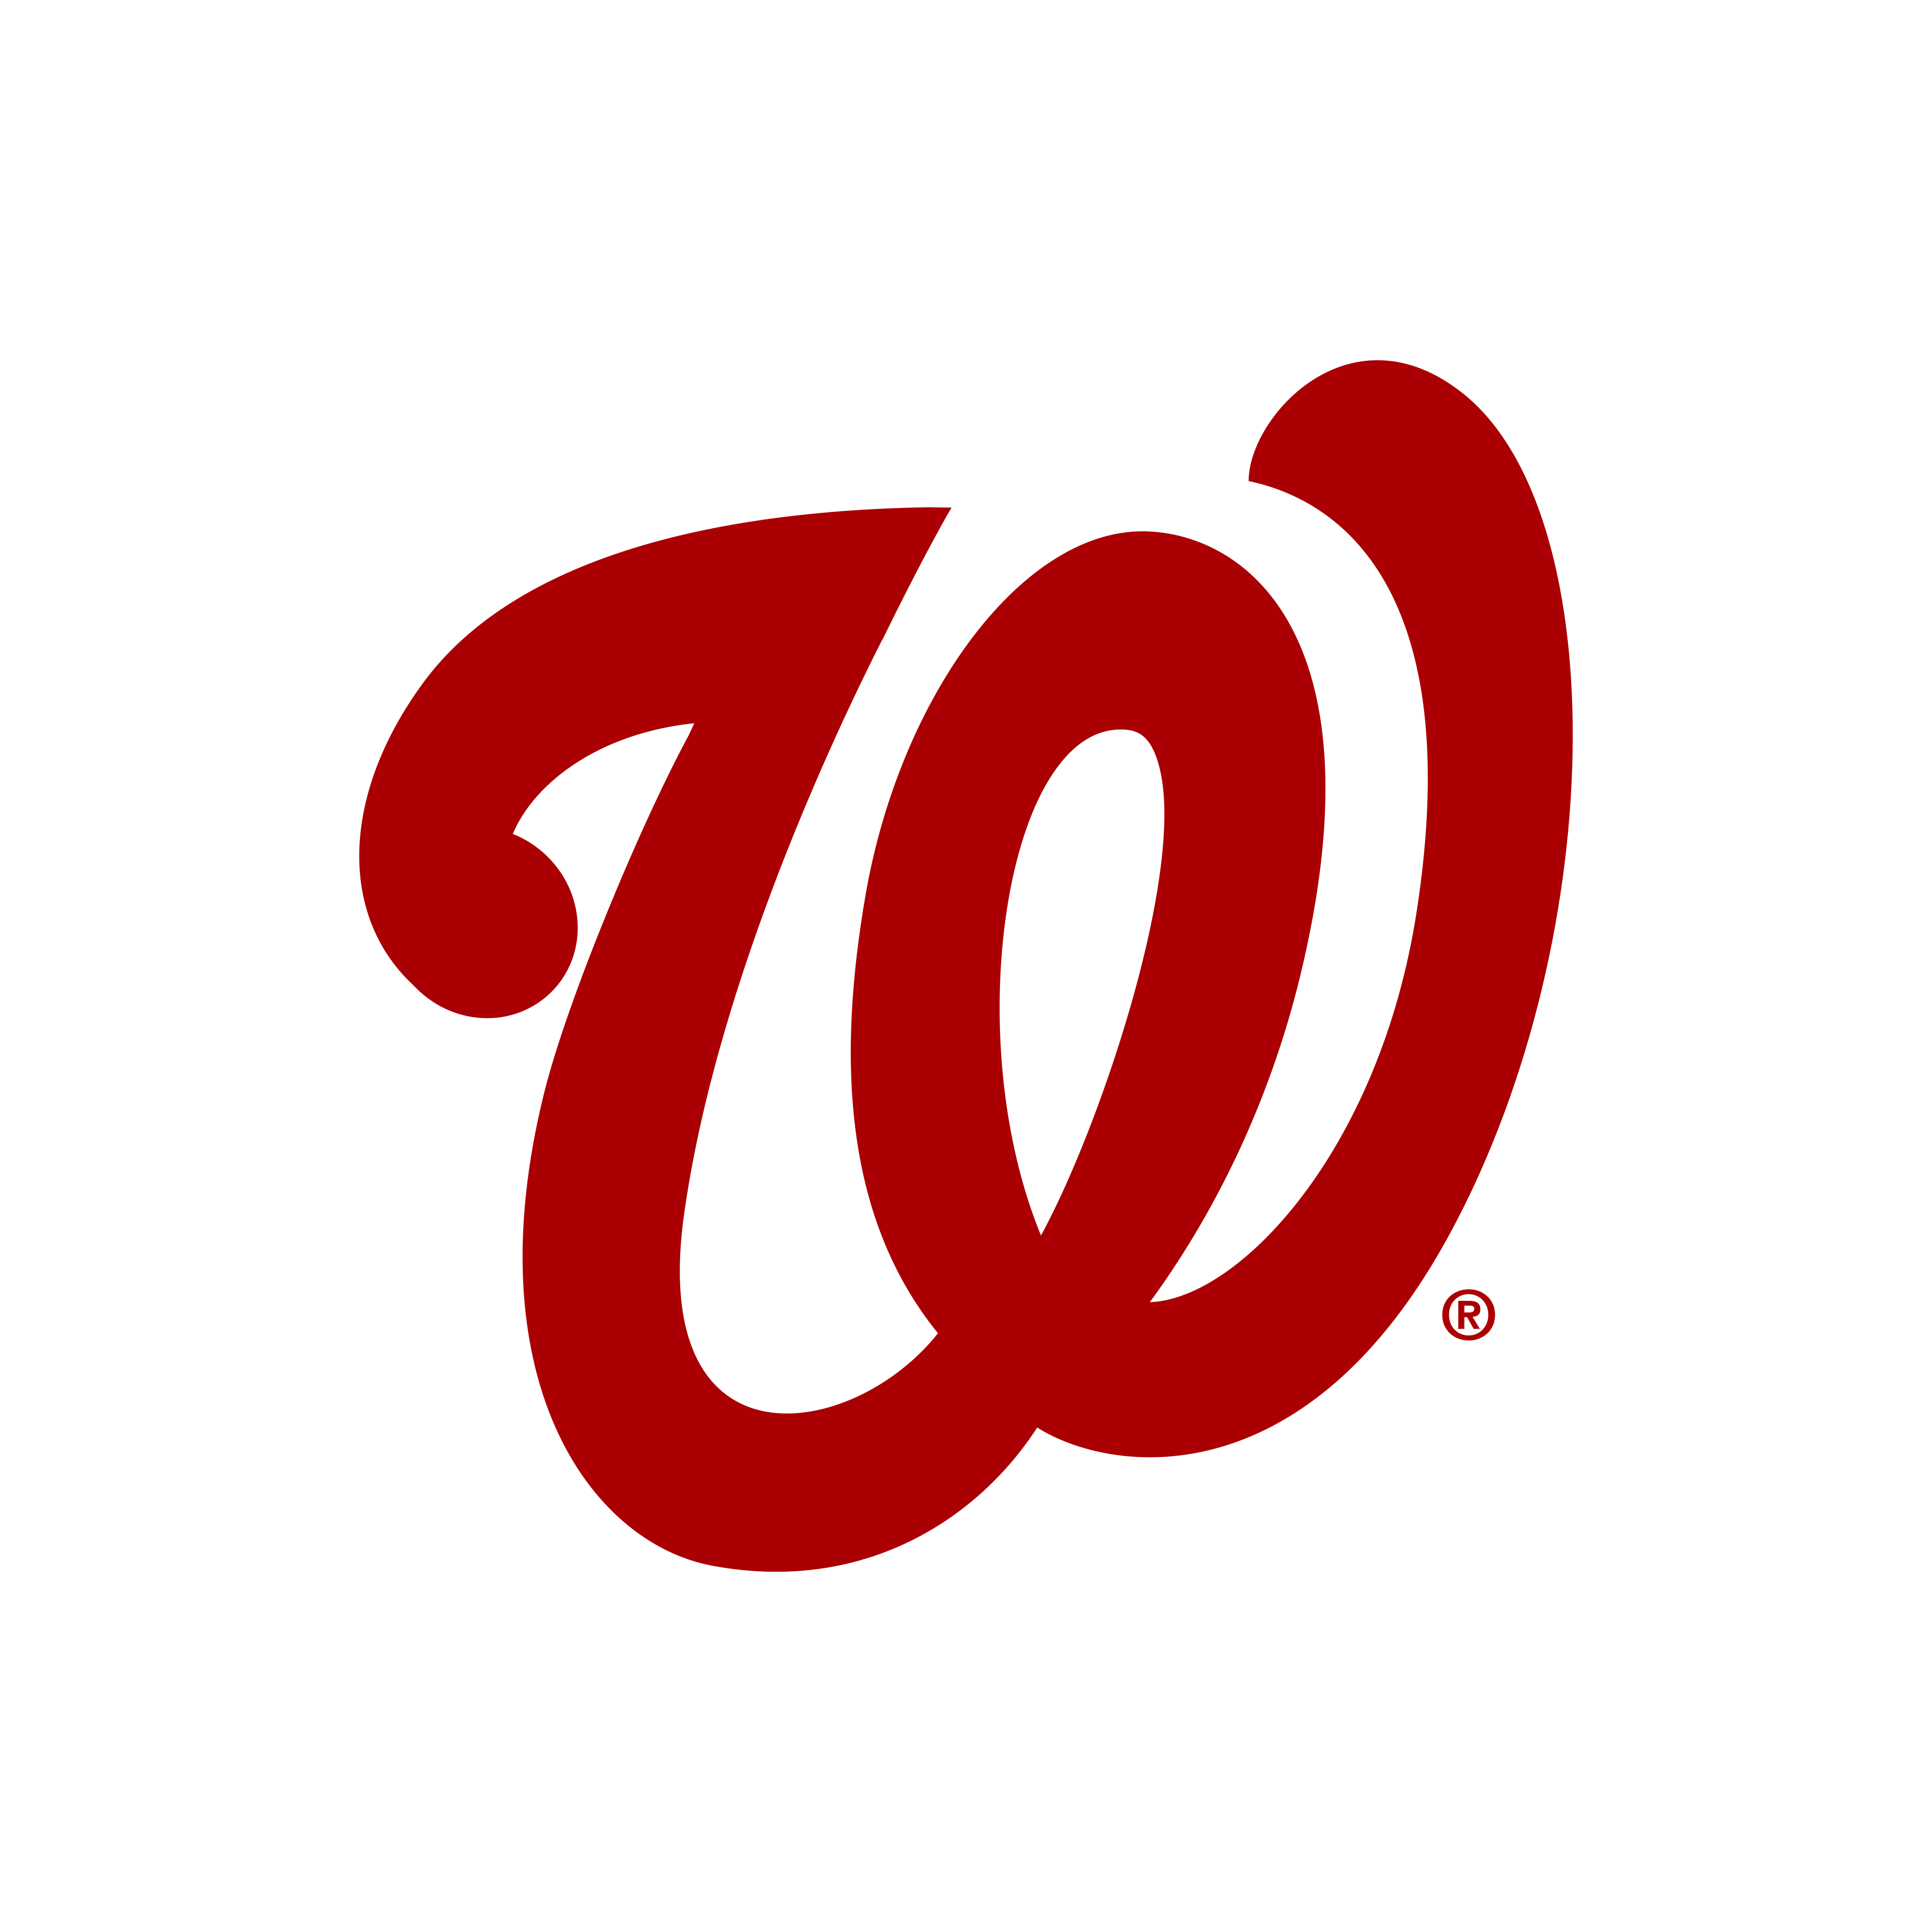 washington nationals logo 0 - Washington Nationals Logo